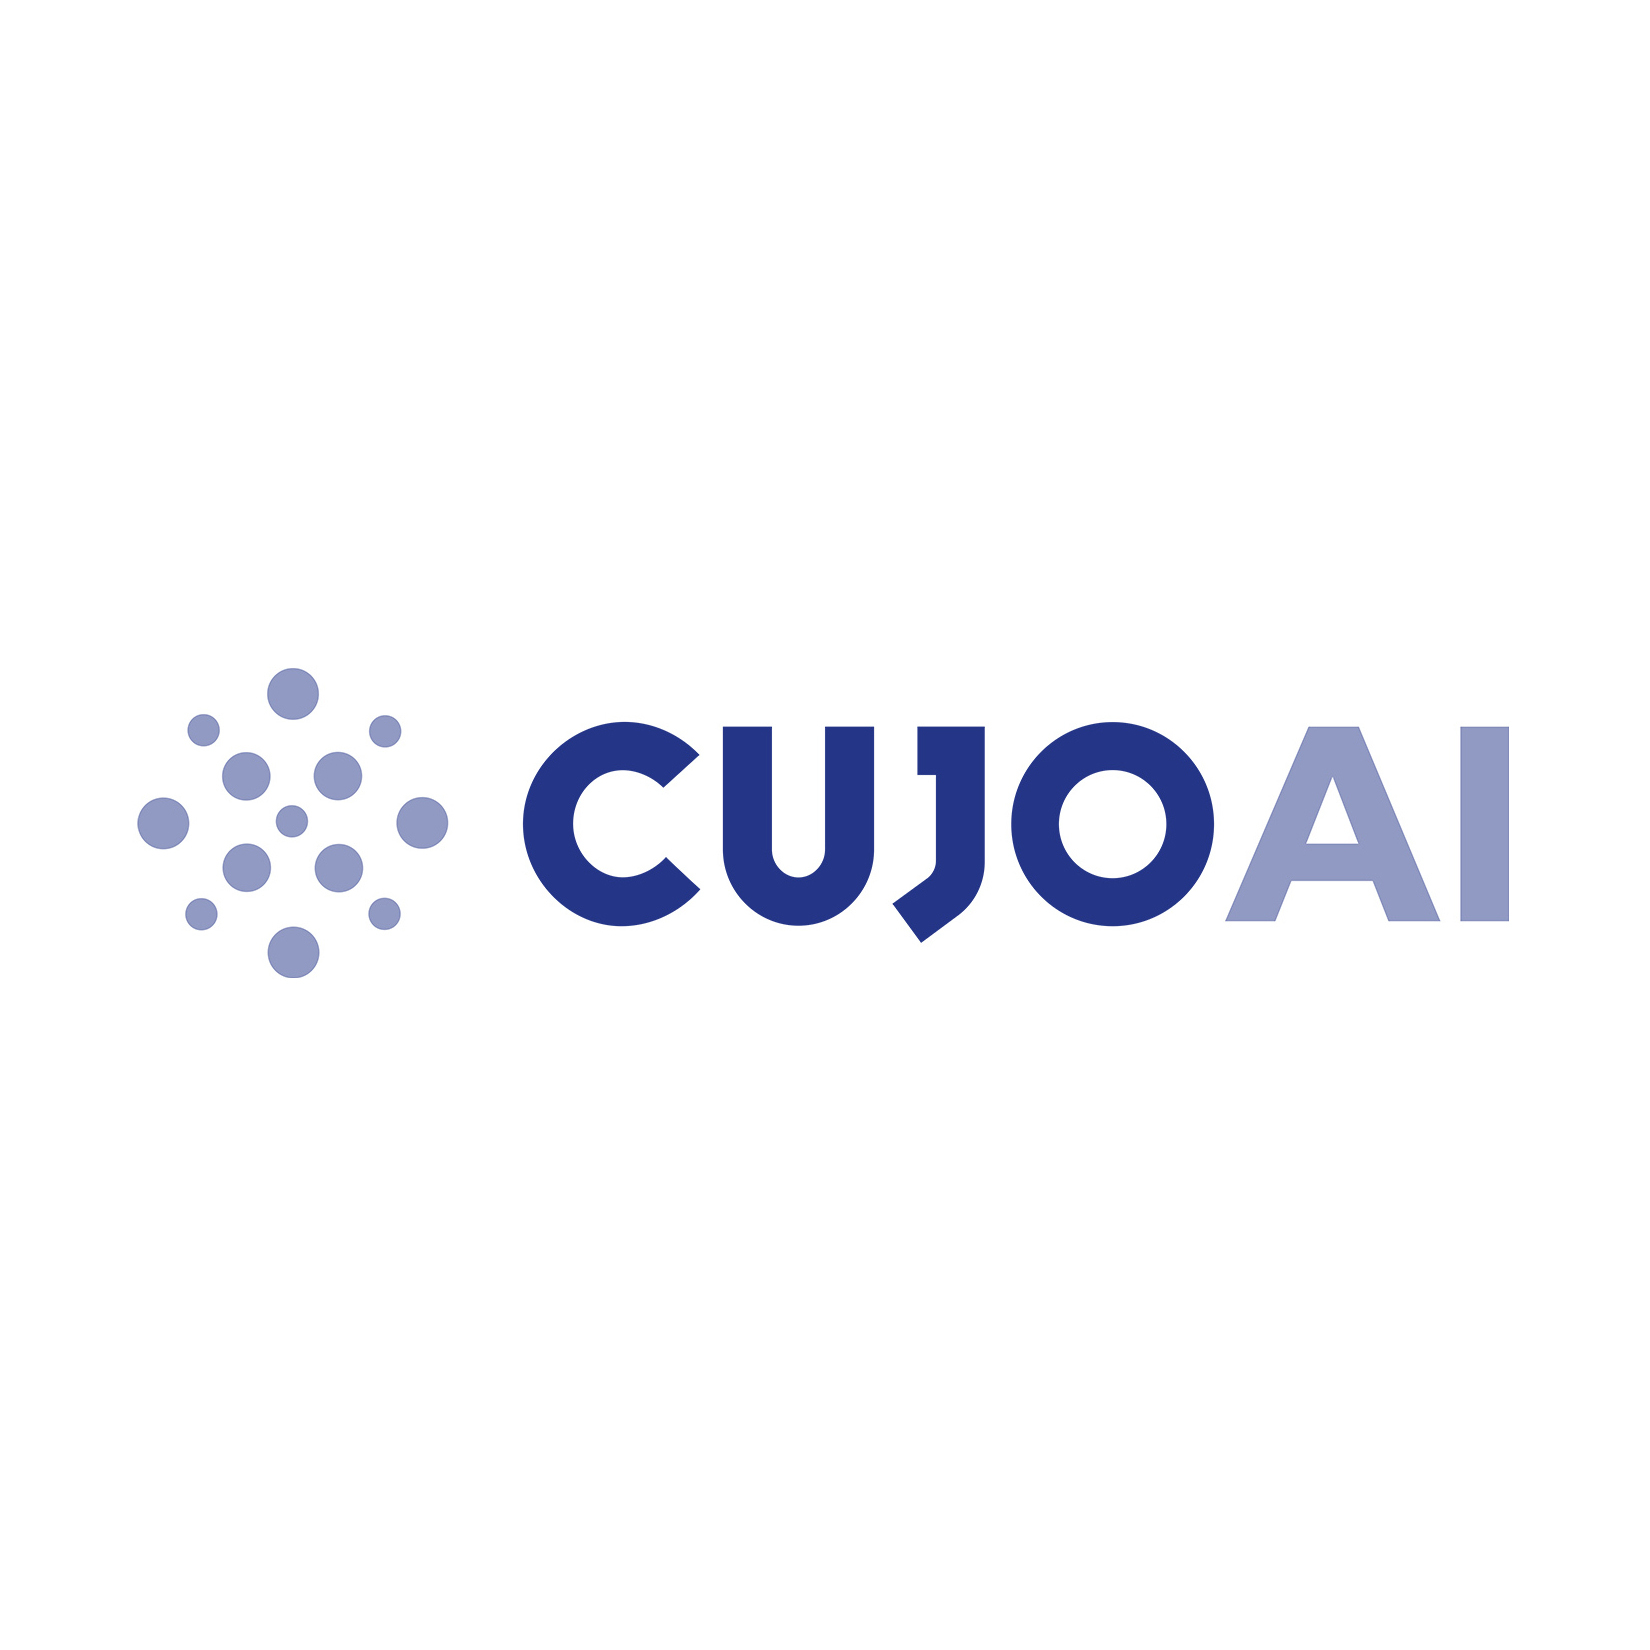 Image of article 'CUJO AI Joins the European Telecommunications Standards Institute (ETSI), Strengthening Involvement in Future 5G Infrastructure'